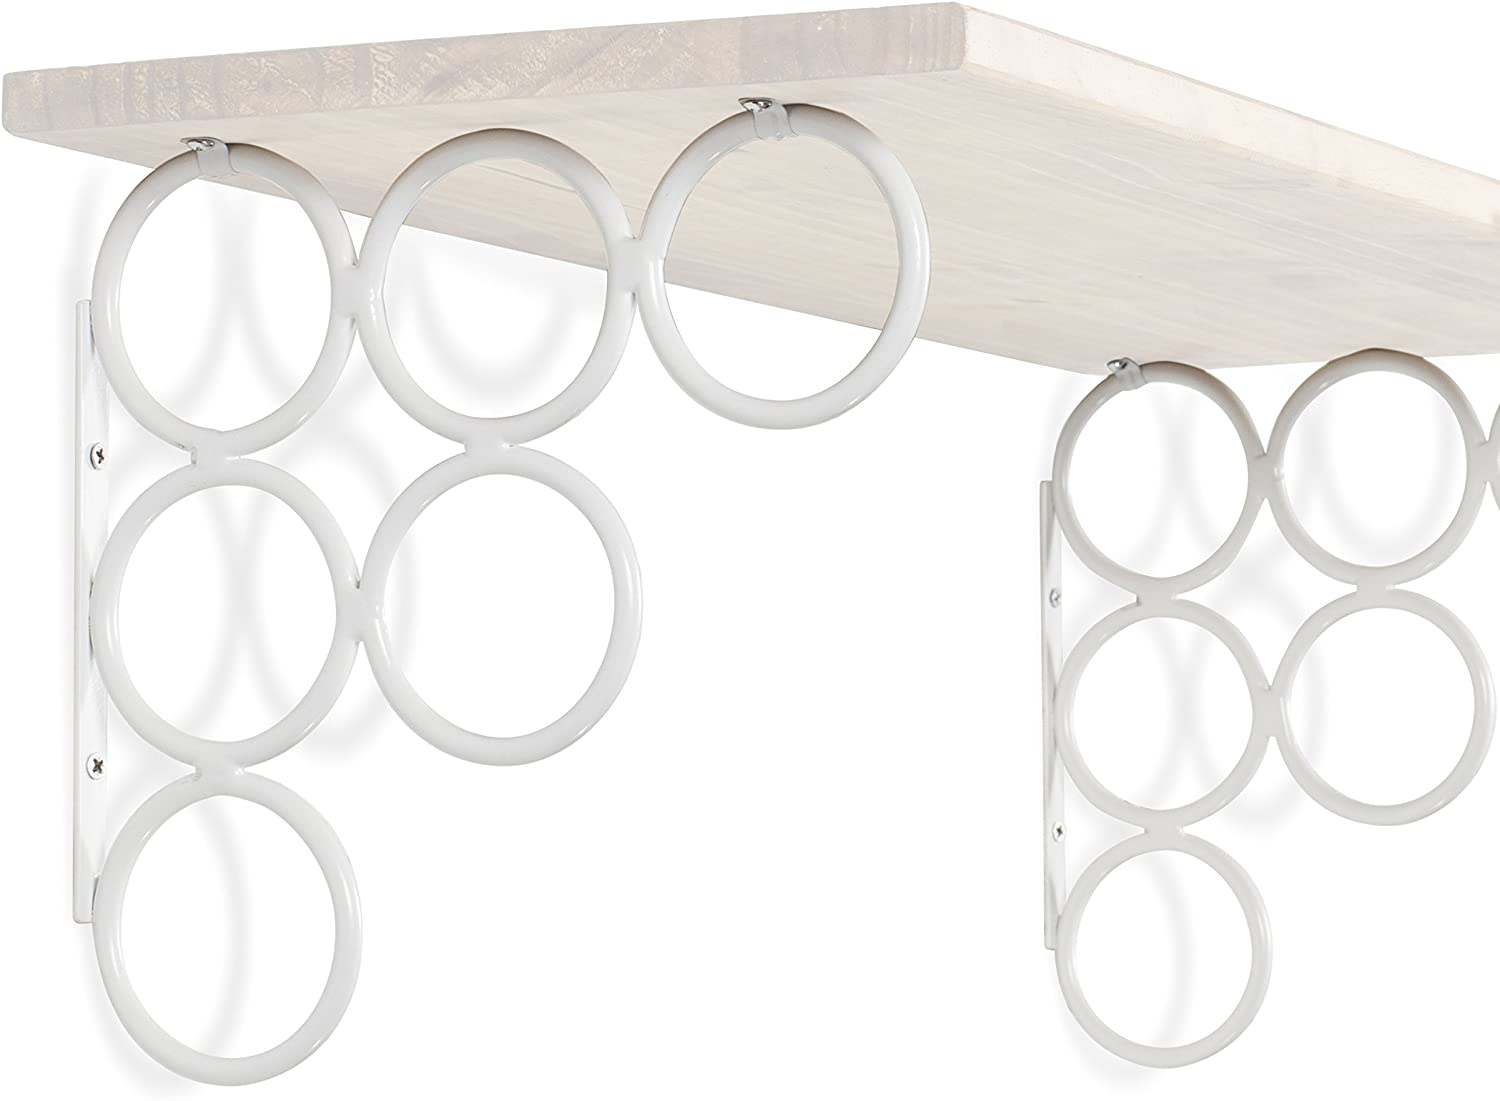 Wallniture Set of 4 Multi-Use Wall Mounted Brackets for Shelves - Brackets Only No Shelf Included -Scarves Crafts Office Products Iron White